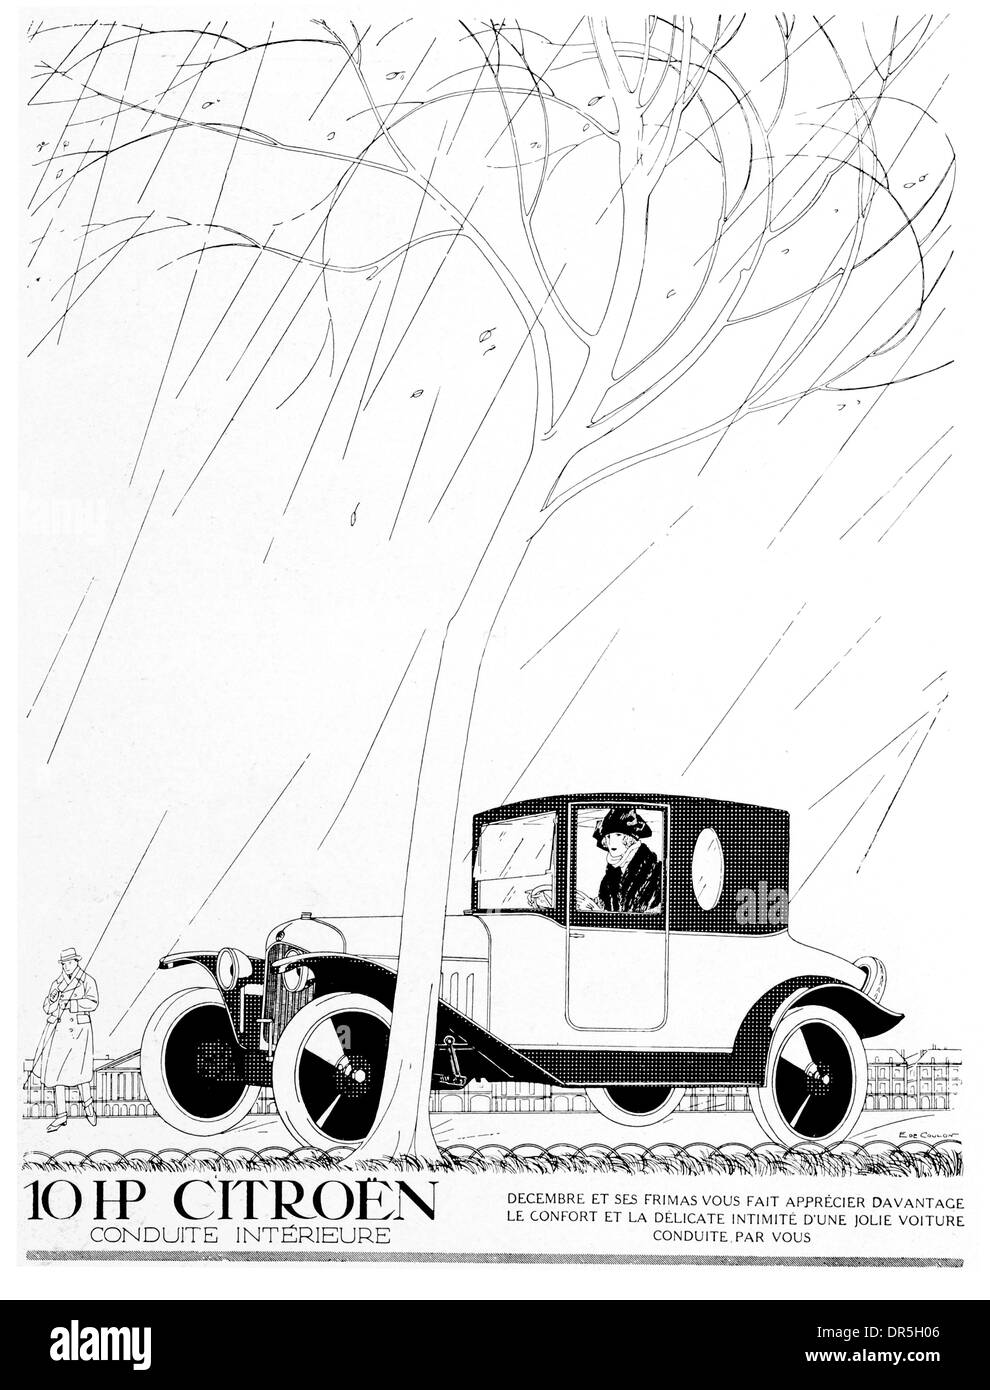 French Press Advertisment 1922 By De Coulen for Citroen 10 hp car - Stock Image